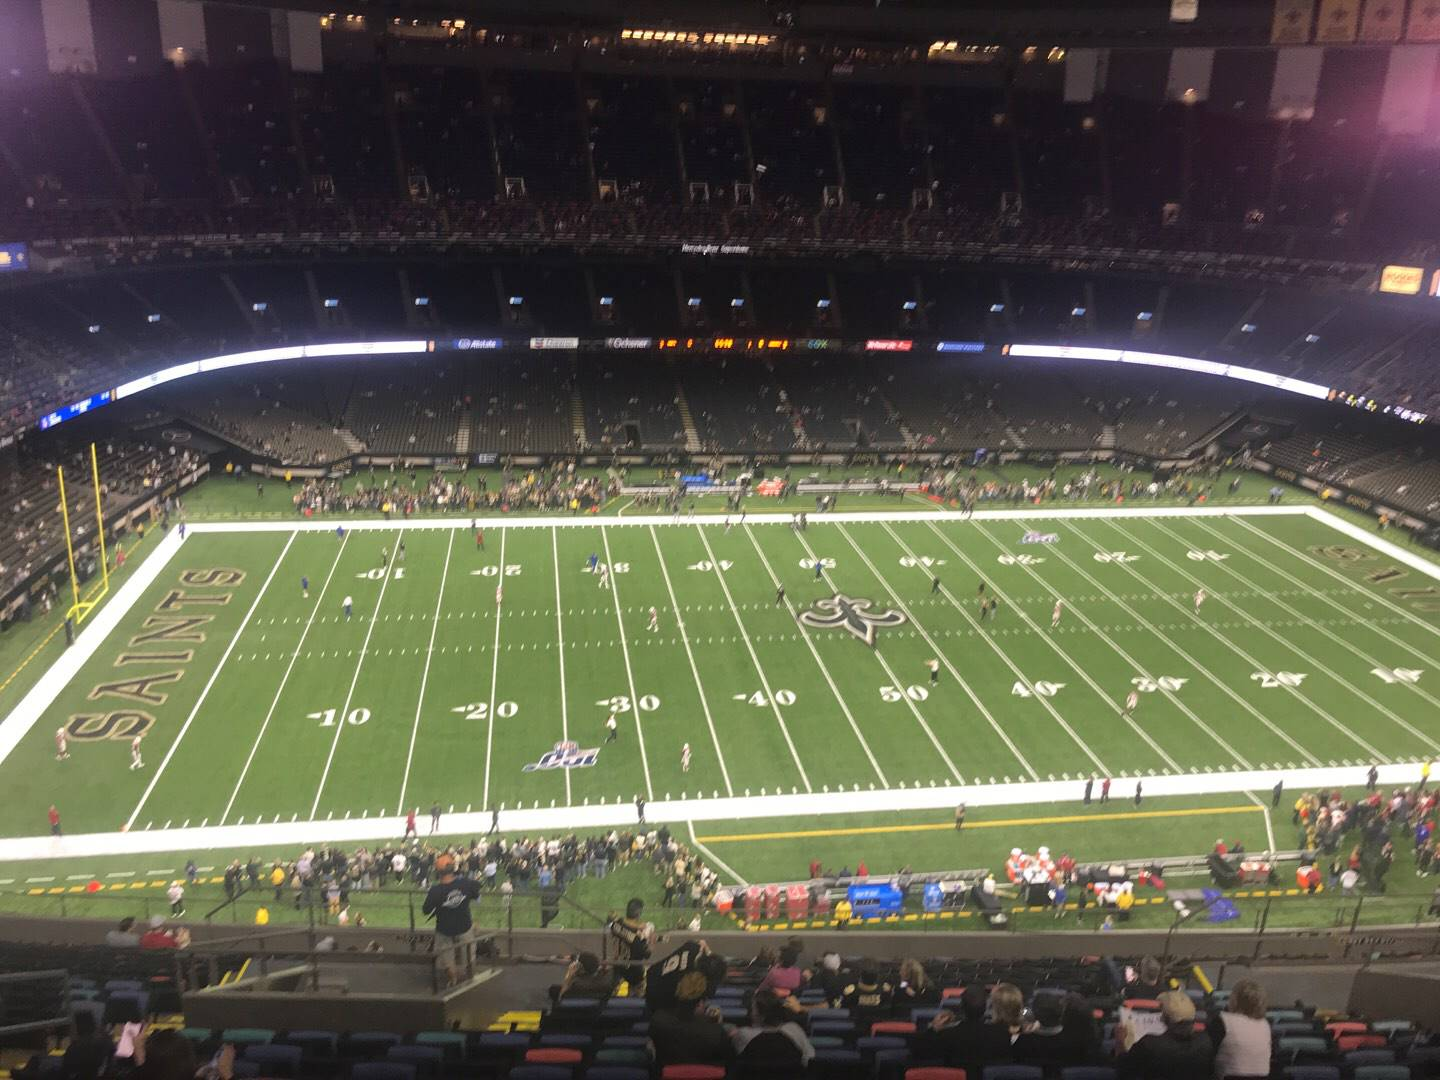 Mercedes-Benz Superdome Section 616 Row 22 Seat 15